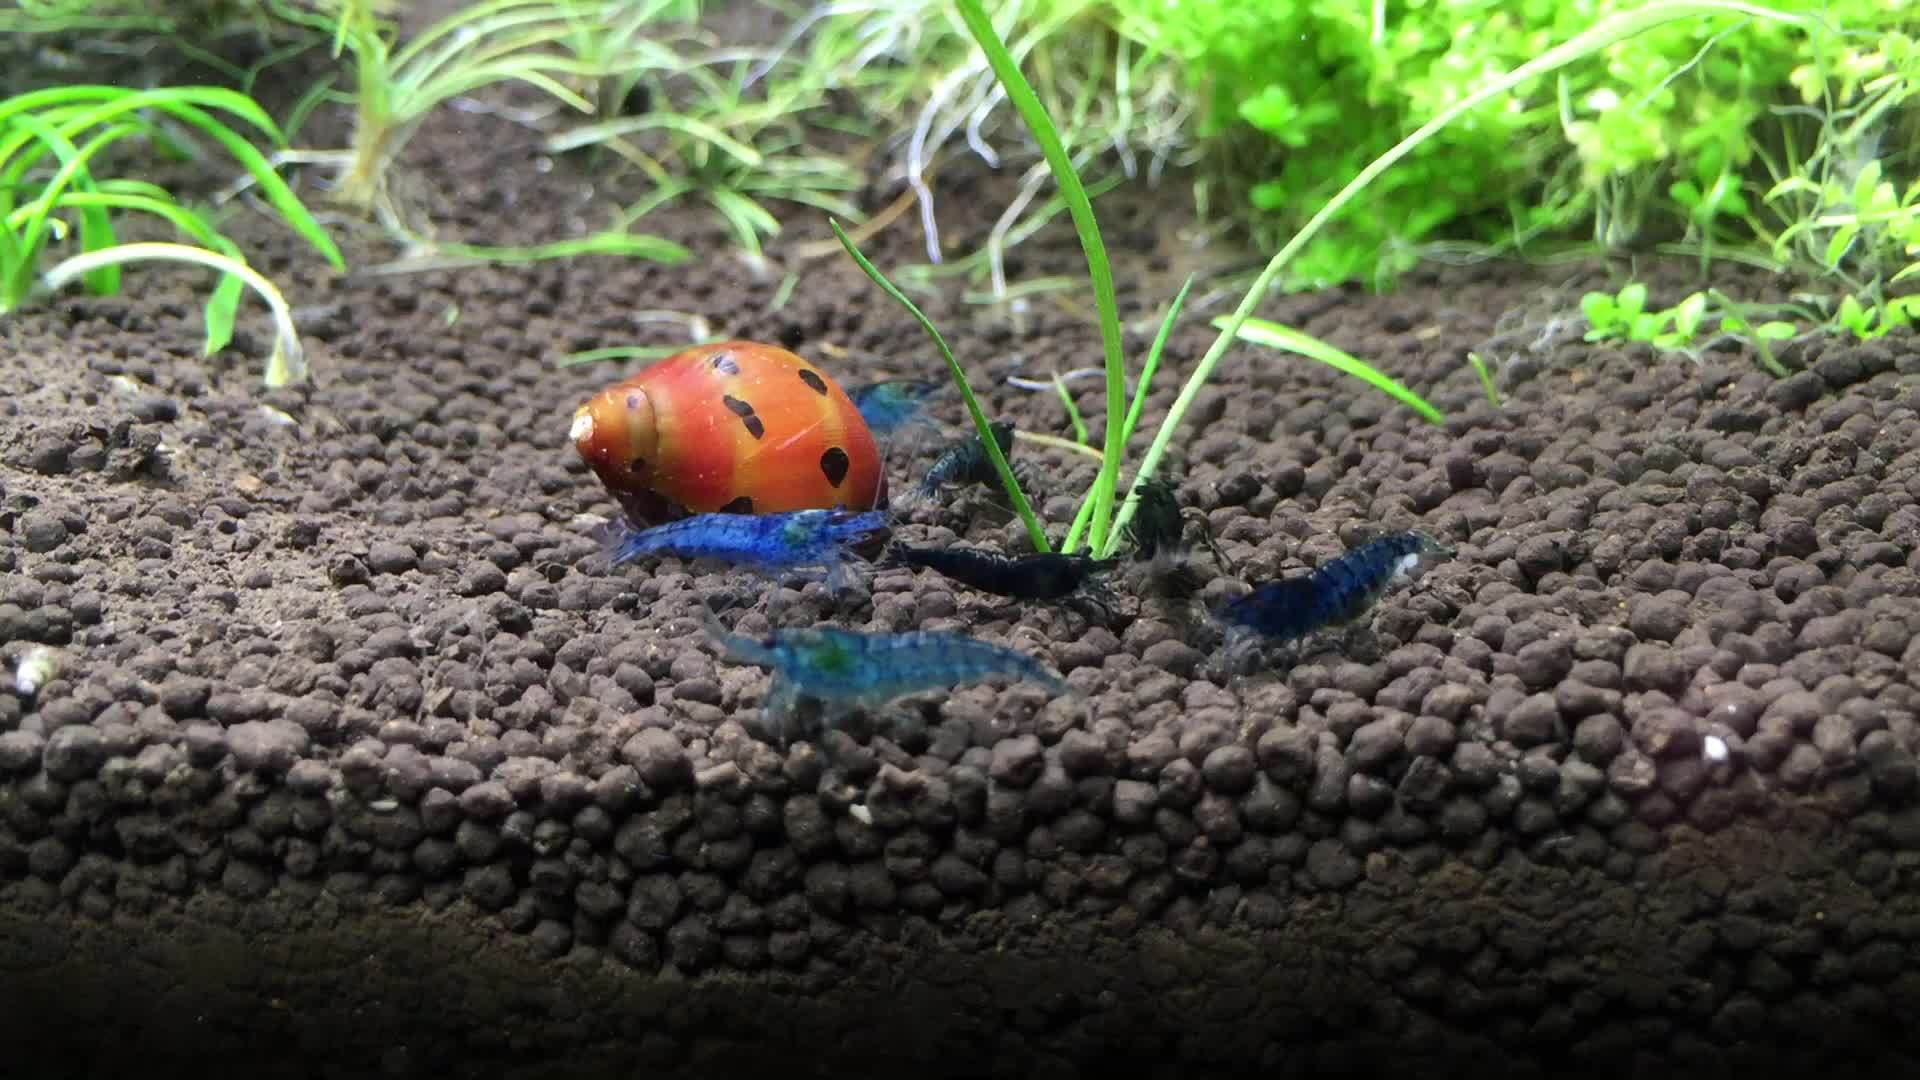 berried, shrimp, shrimptank, Berried Blue Dream Shrimp GIFs